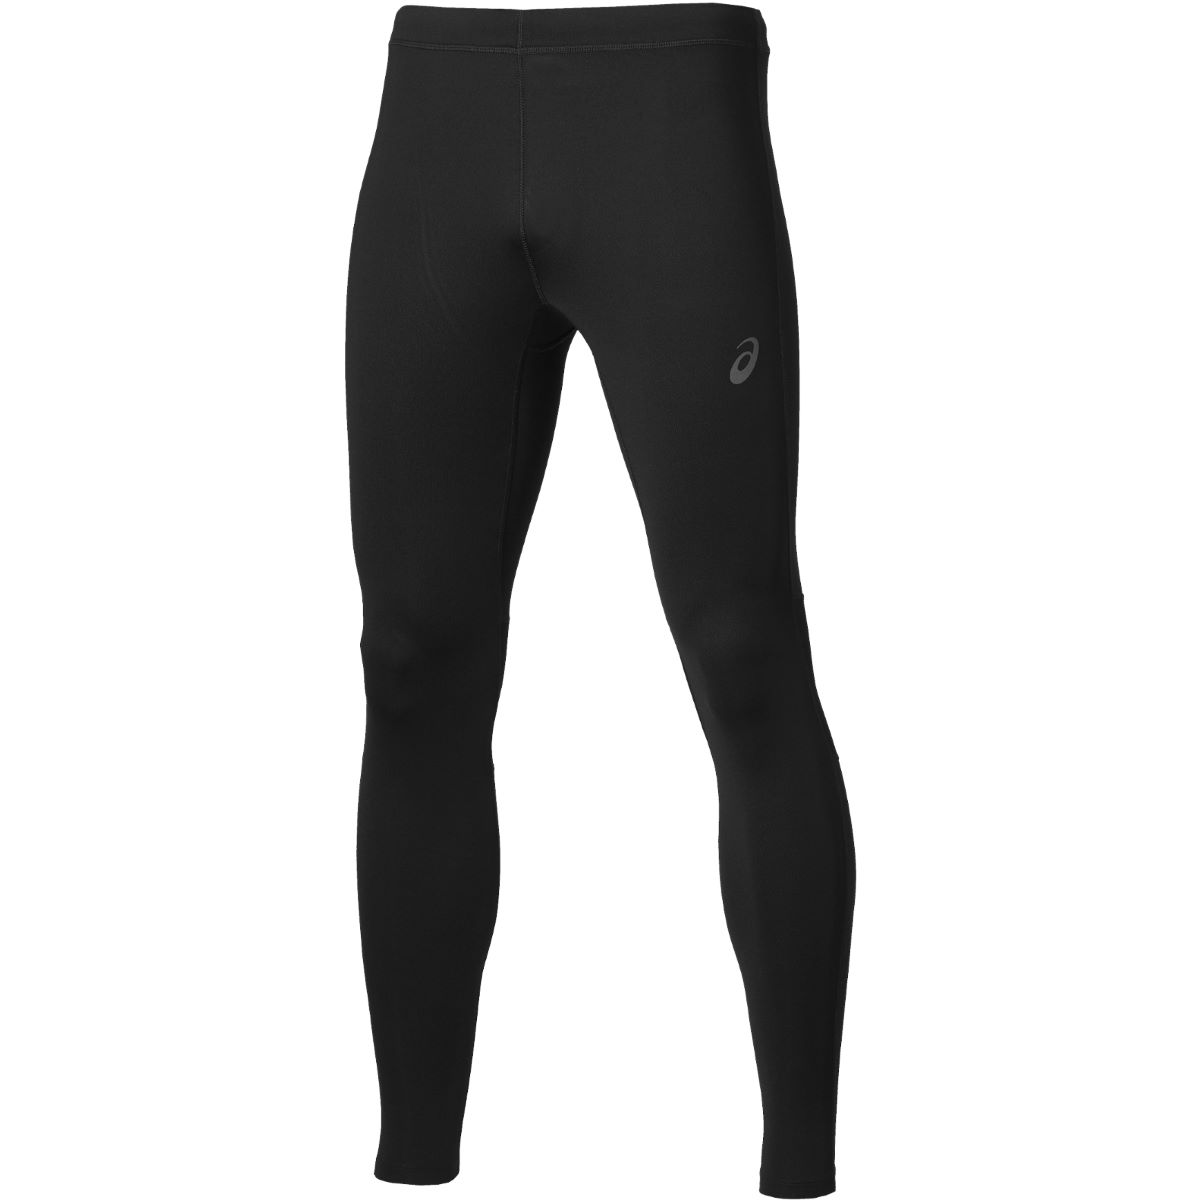 Asics tight aw16 running tights performance black aw16 134098 0904 1